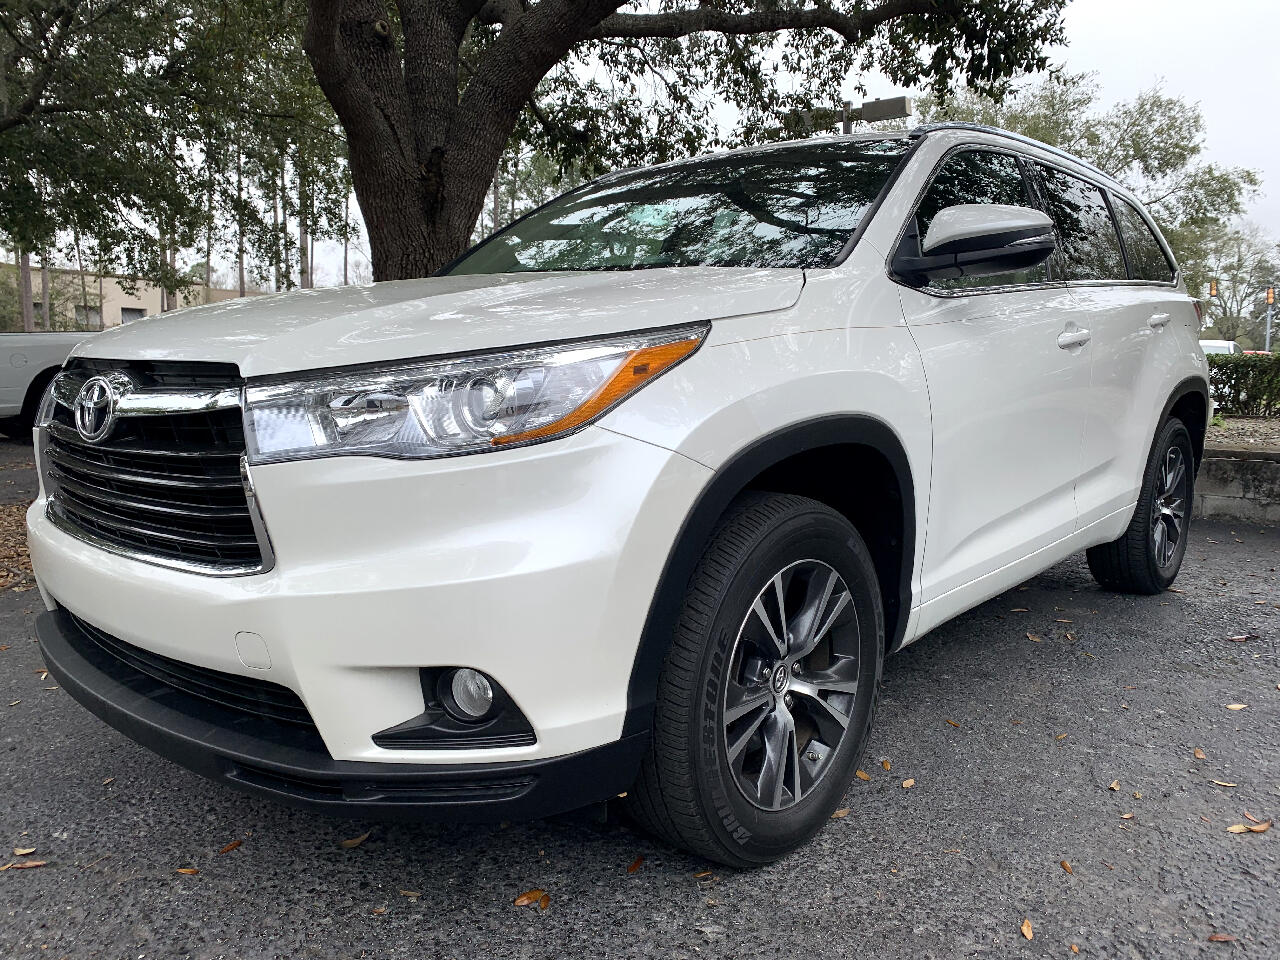 2016 Toyota Highlander FWD 4dr V6 XLE With 3rd Row Seat